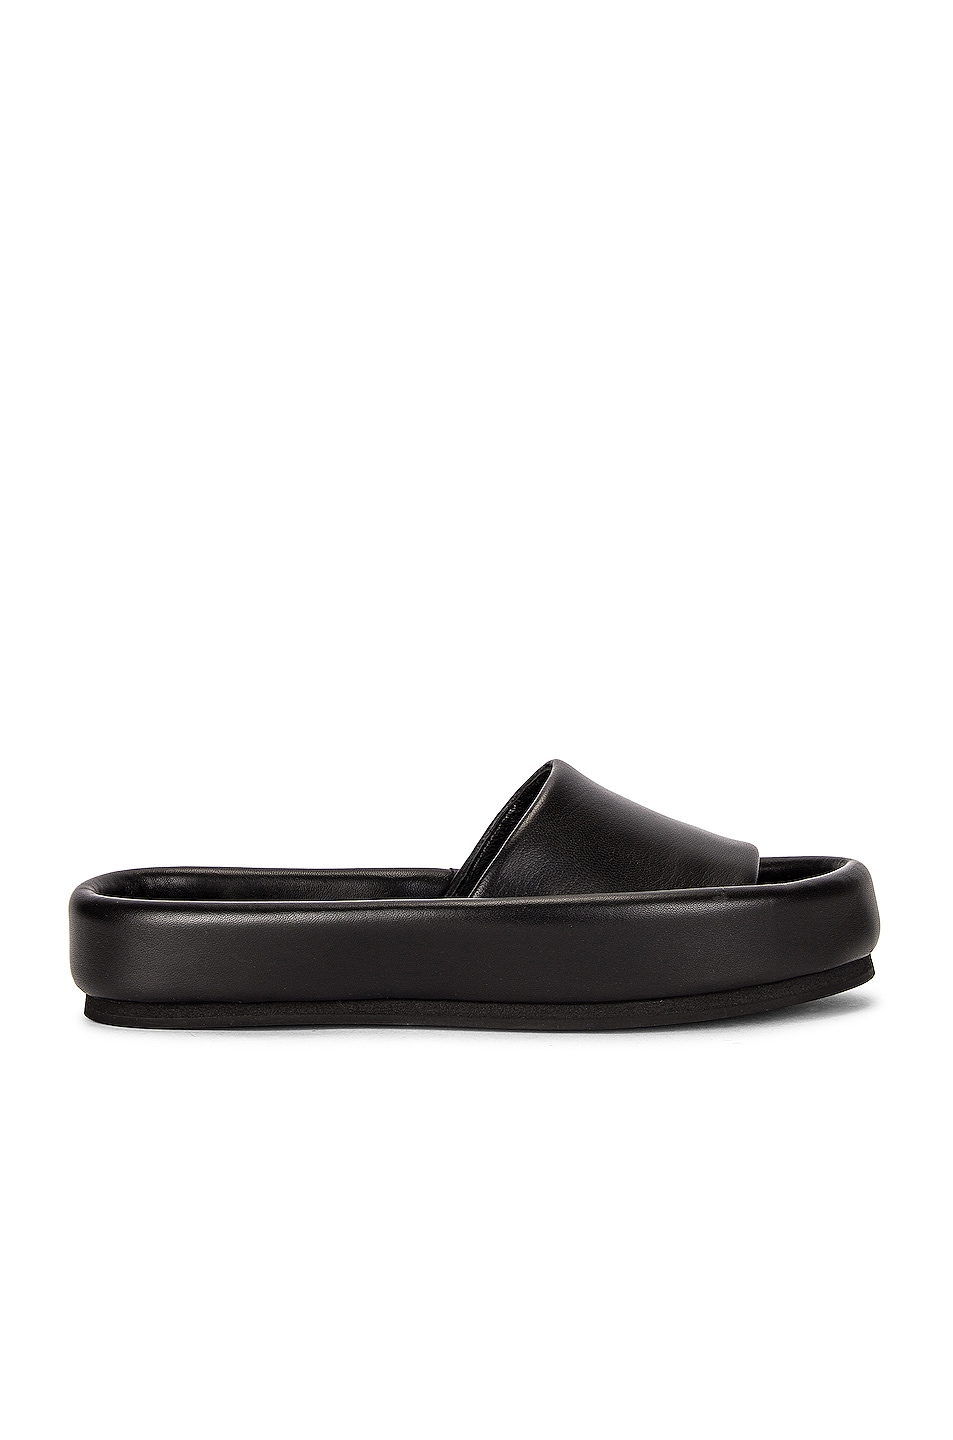 Image 1 of KHAITE Venice Pool Slides in Black